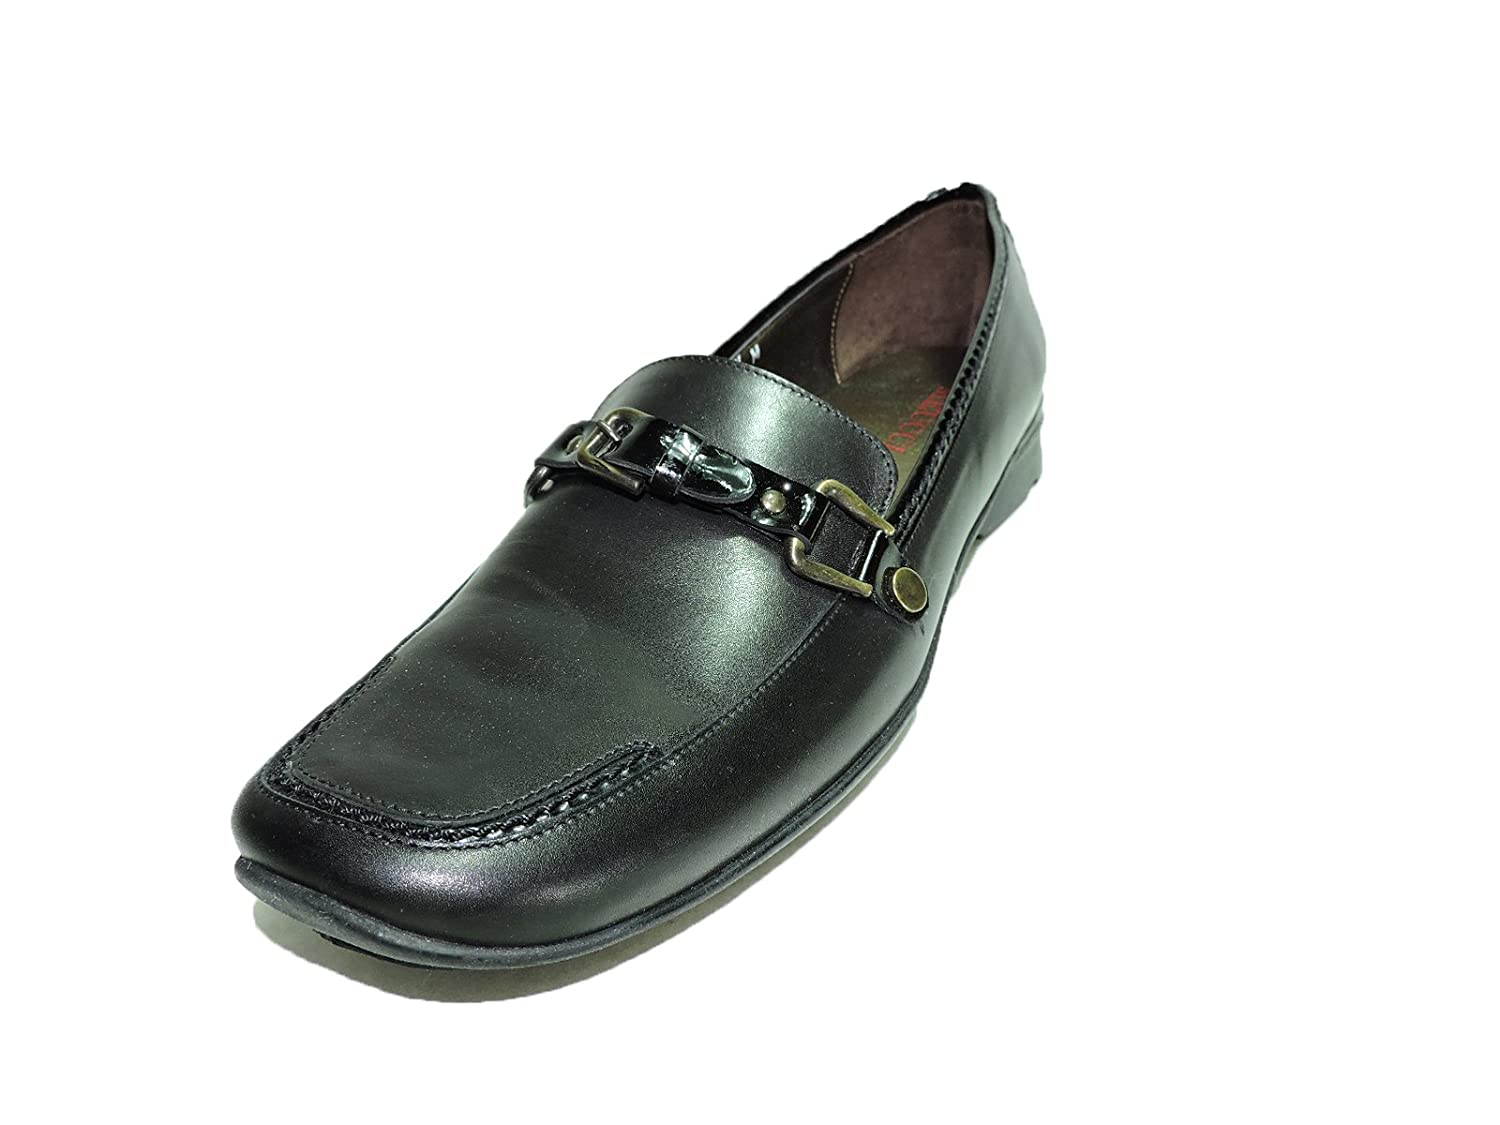 Sesto Meucci Womens Casee Black Leather Loafer Slip on Shoes Size 10 N, AA